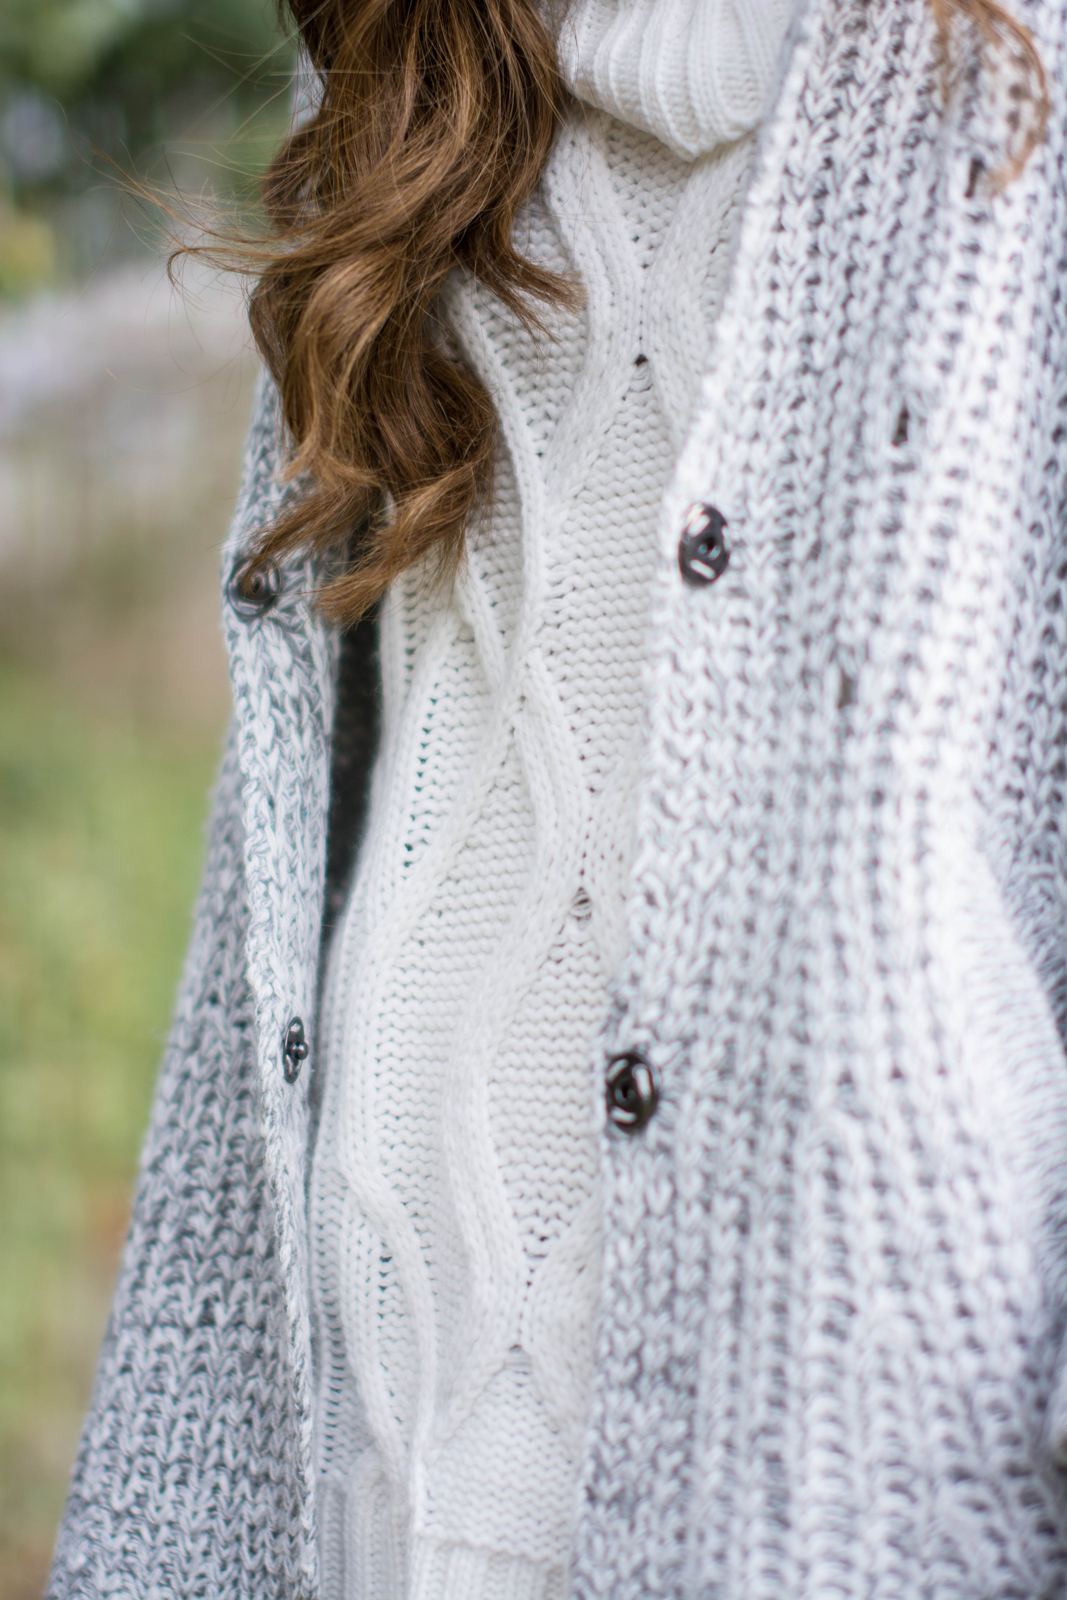 EJSTYLE - Lookbook store cardigan knit, forever 21 cream cowl neck sweater jumper